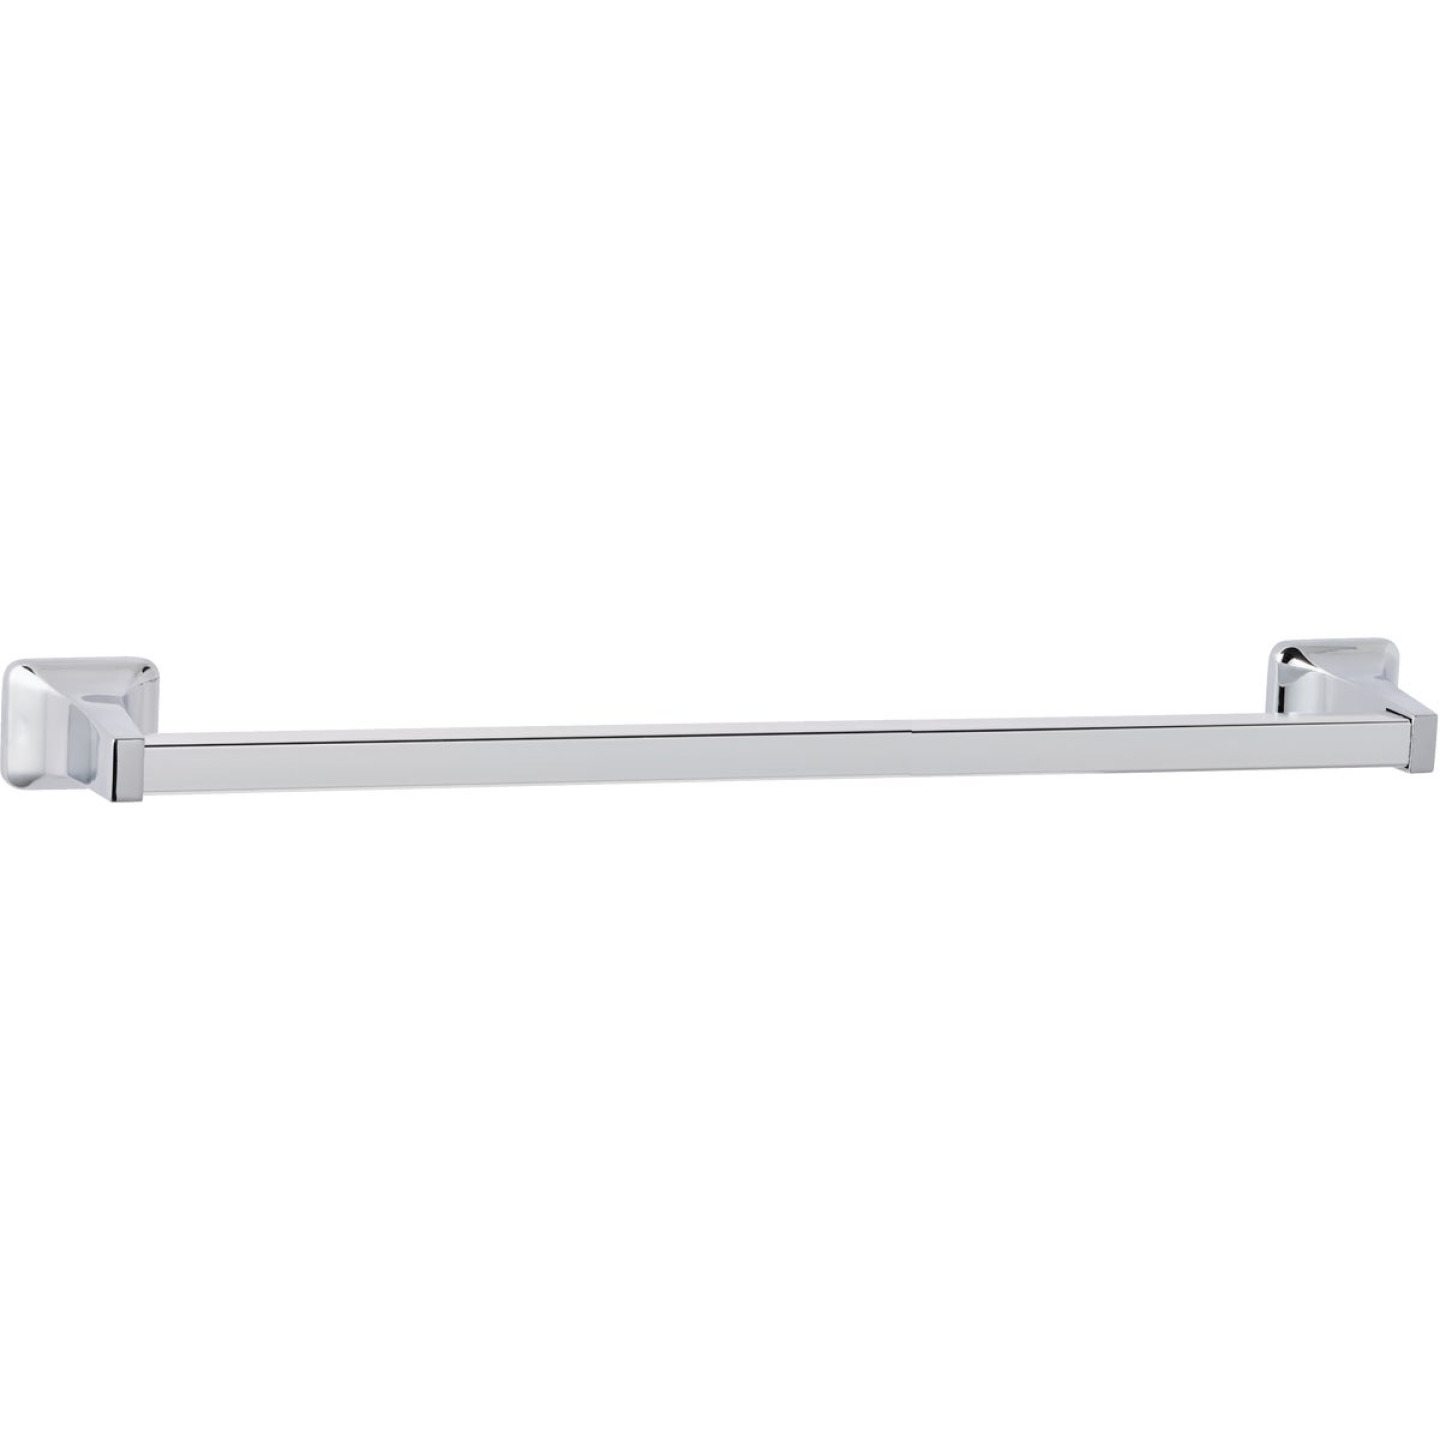 Home Impressions Vista 24 In. Polished Chrome Towel Bar Image 1